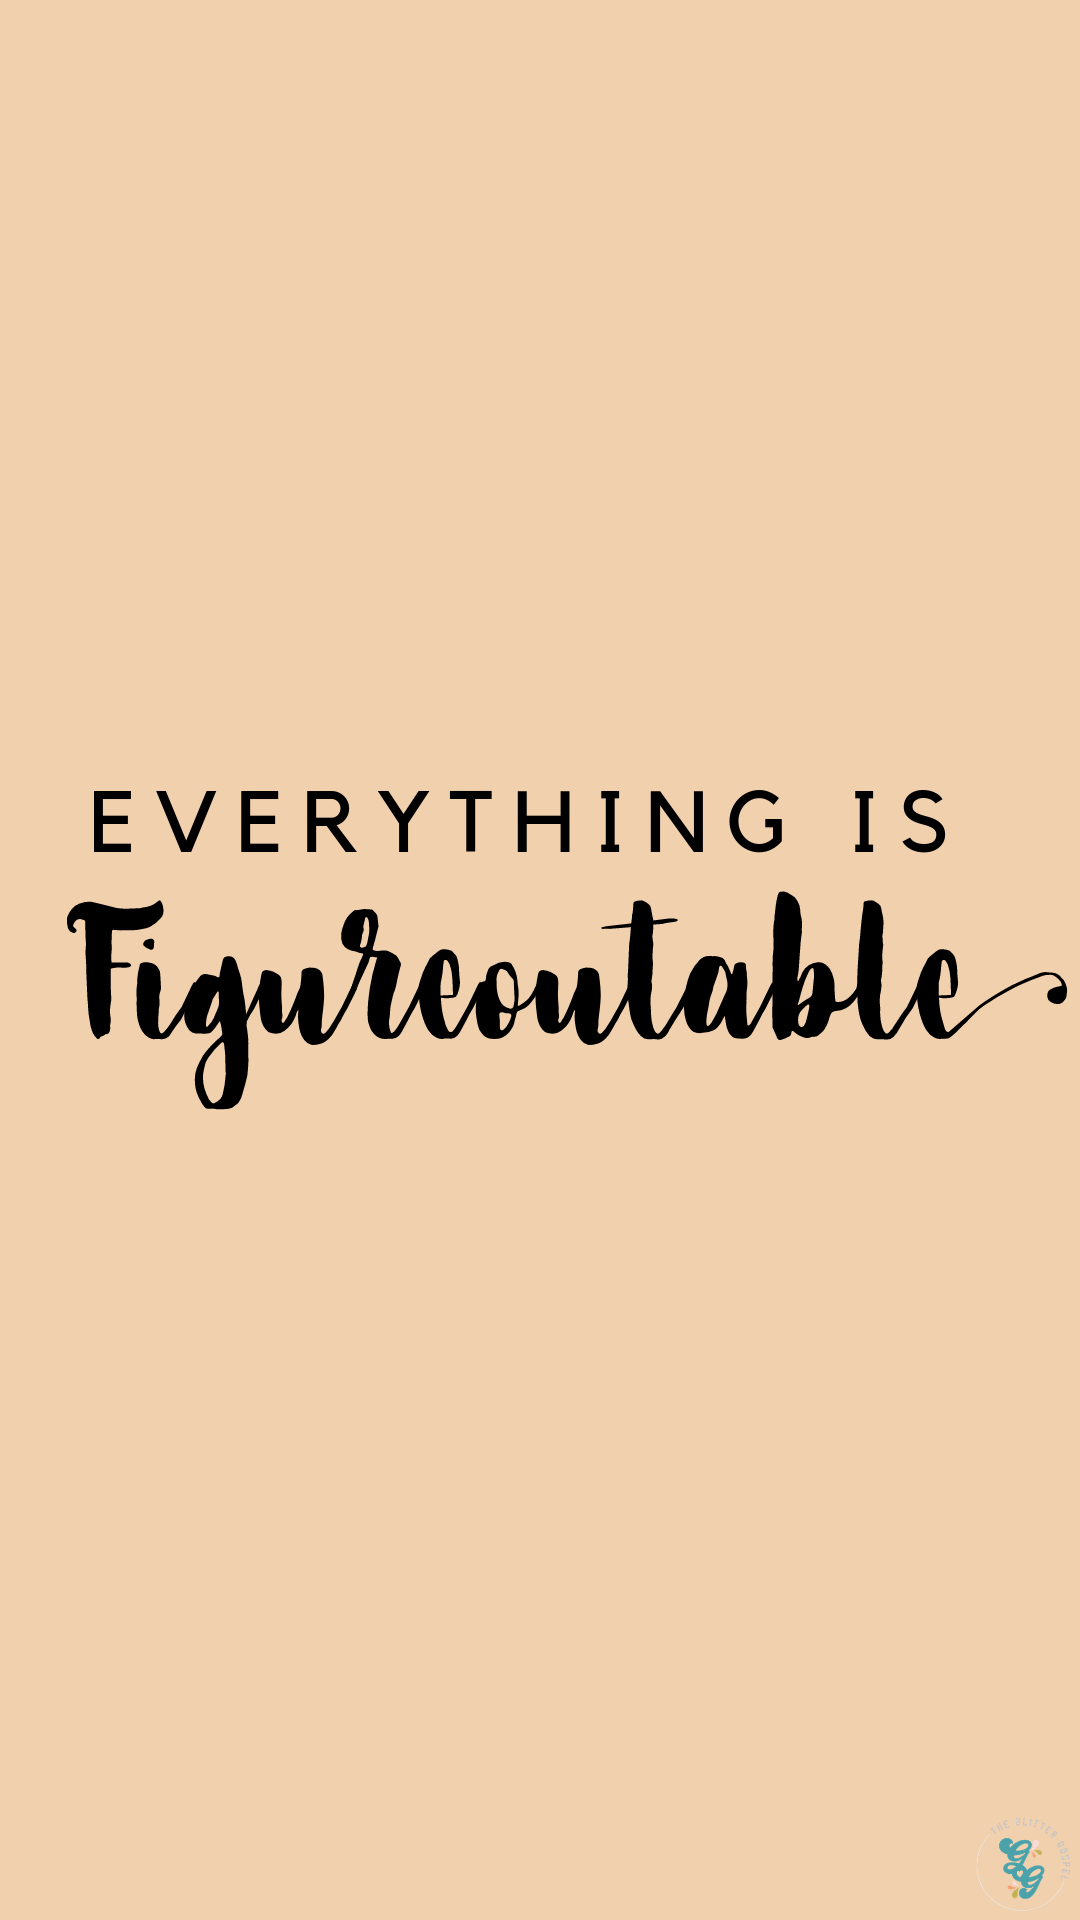 Everything Is Figureoutable Quotes Dailyquotes Funnyquotes Happyquotes Short Powerful Quotes Sarcastic Quotes Soul Quotes